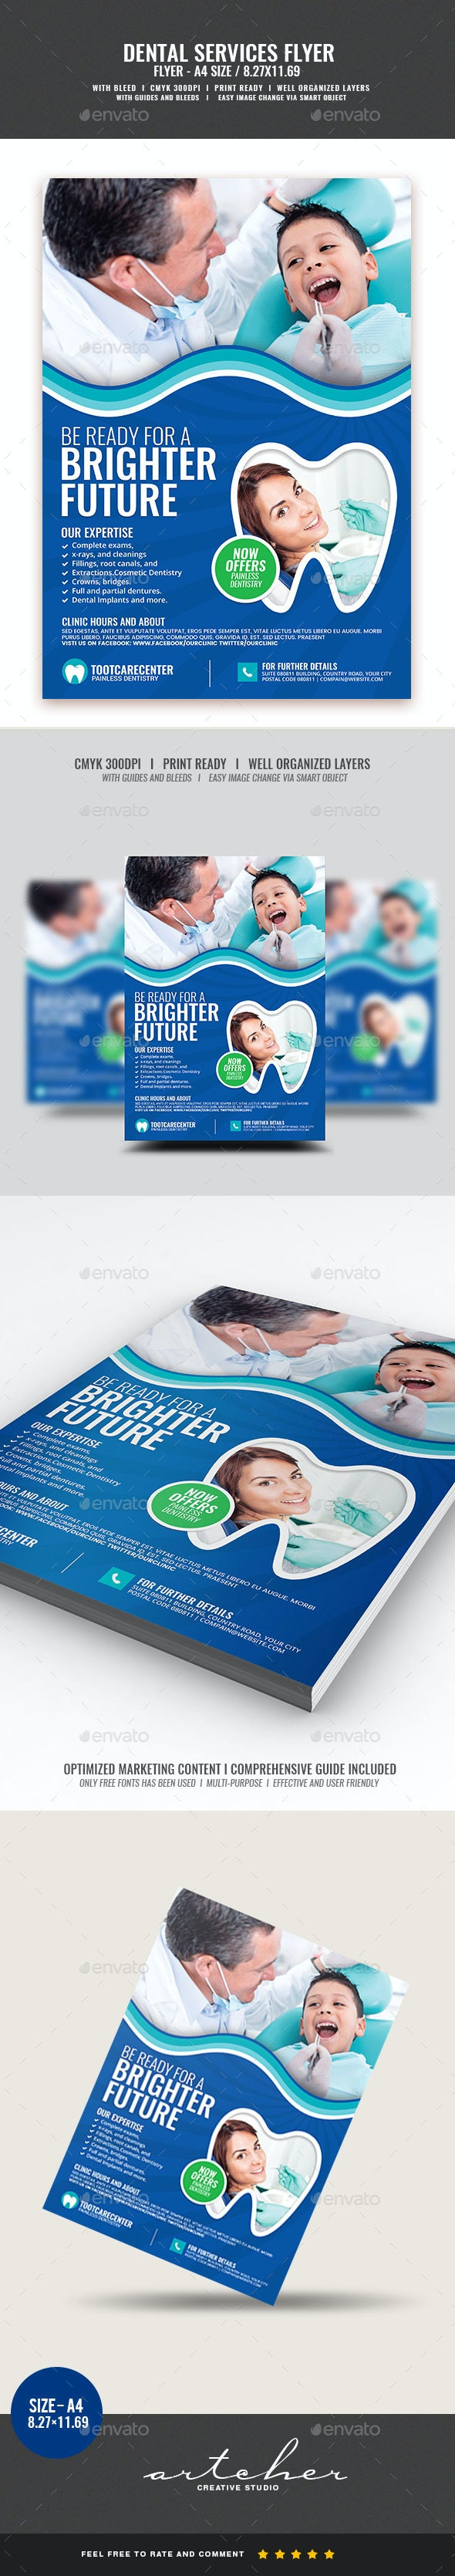 Dental Services Flyer - Corporate Flyers